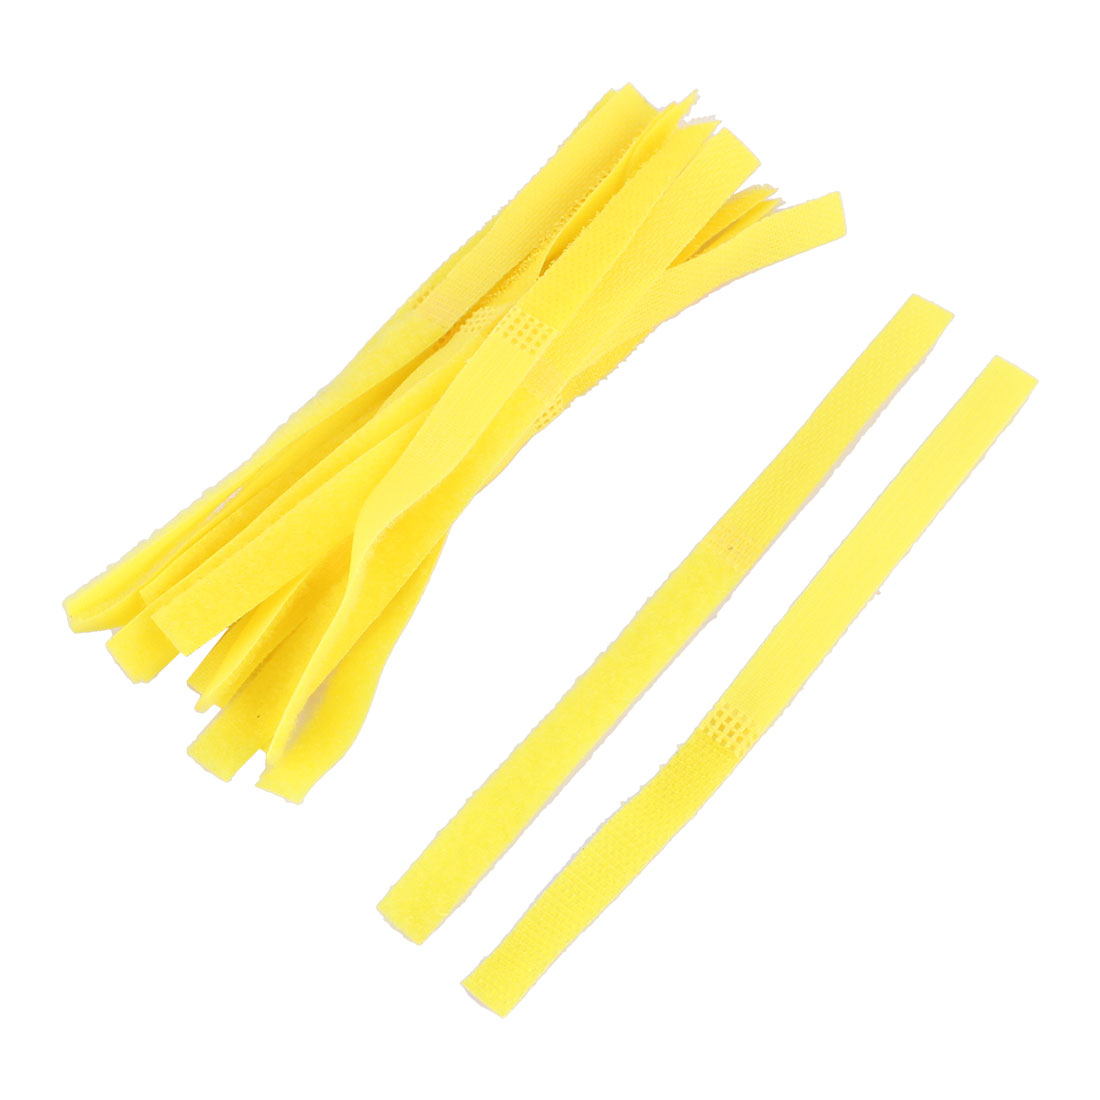 Self Adhesive Sticky Back Fabric Fastener Hook and Loop Tape 16cm Long 15pcs - image 2 of 2